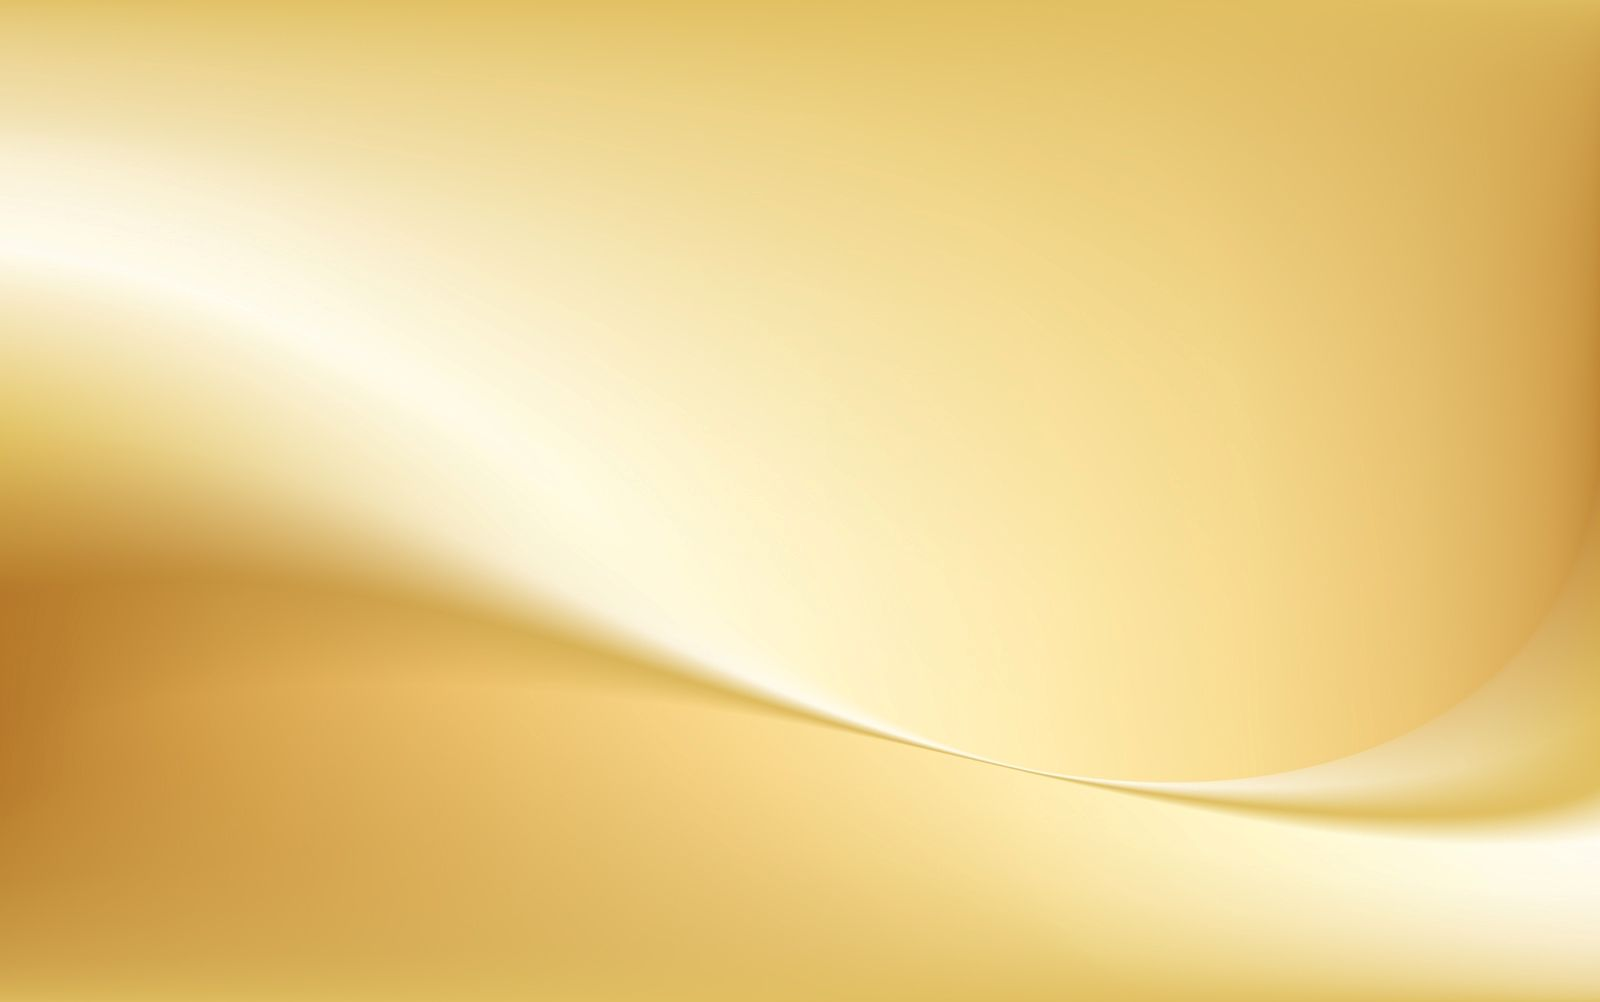 Iphone 5s Wallpapers Full Hd Gold Wallpaper